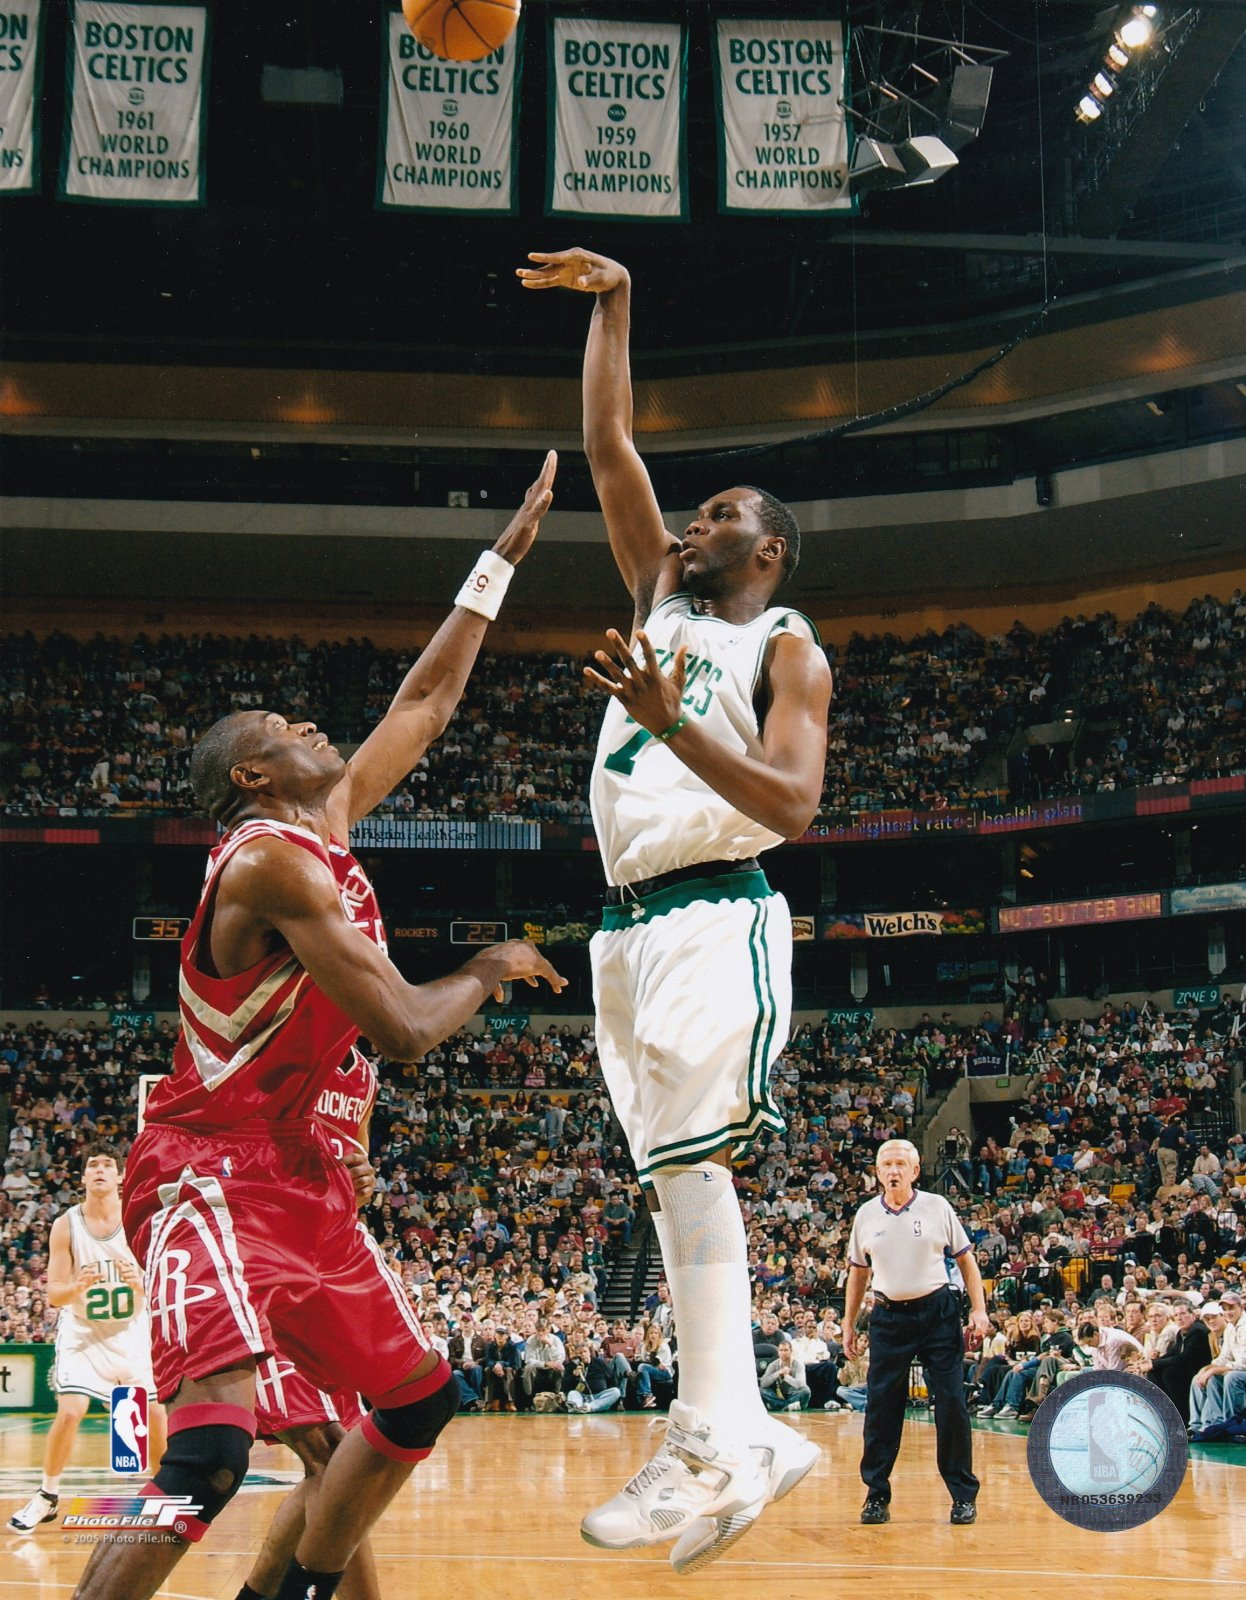 Al Jefferson Boston Celtics 8x10 color photograph 2005